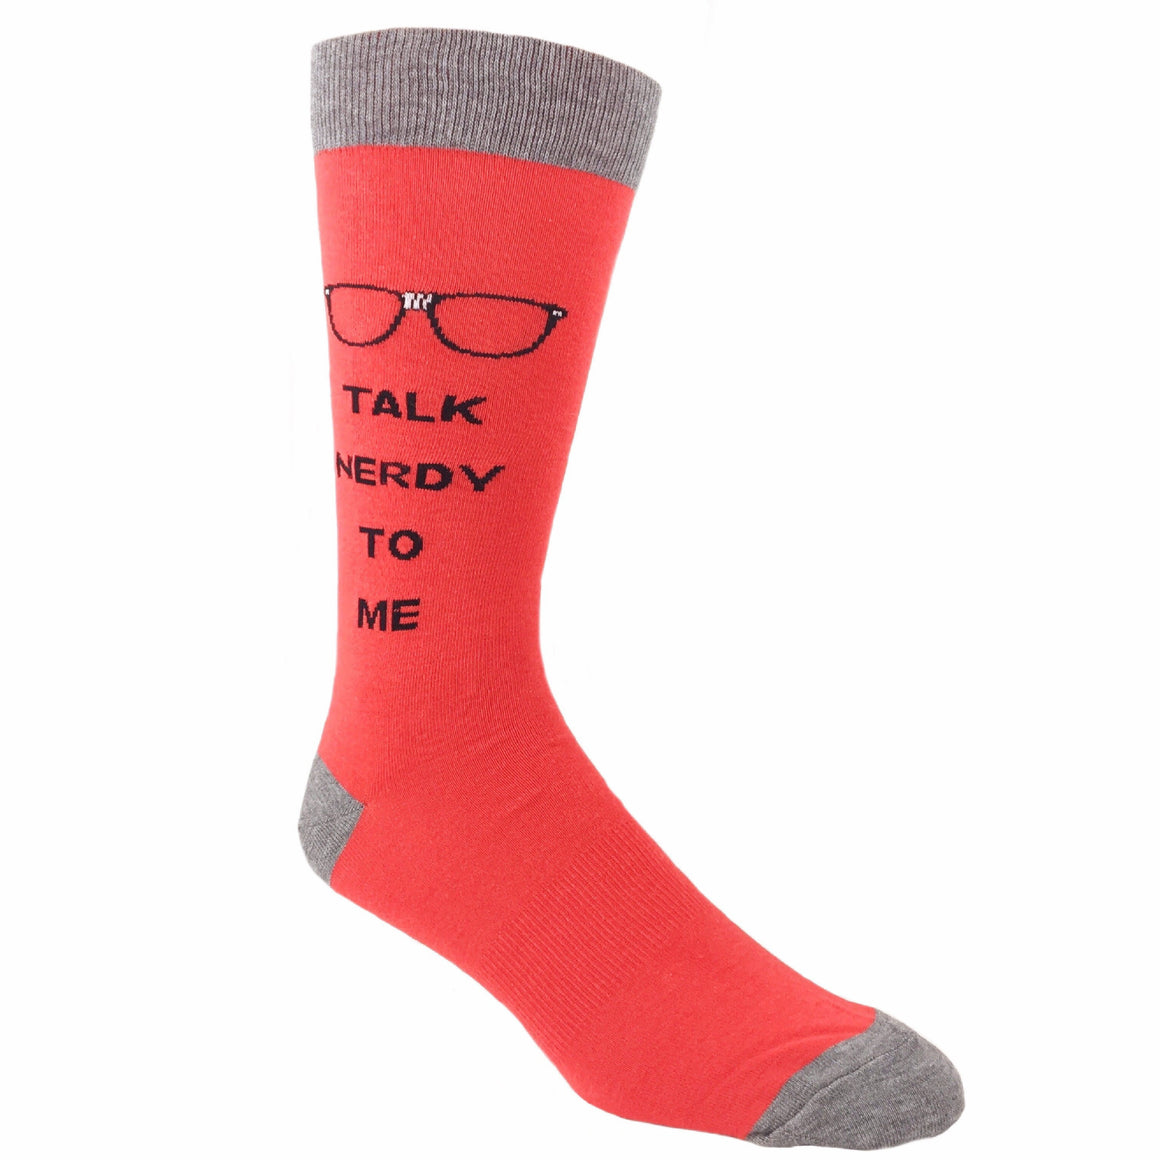 Talk Nerdy to Me Socks - The Sock Spot